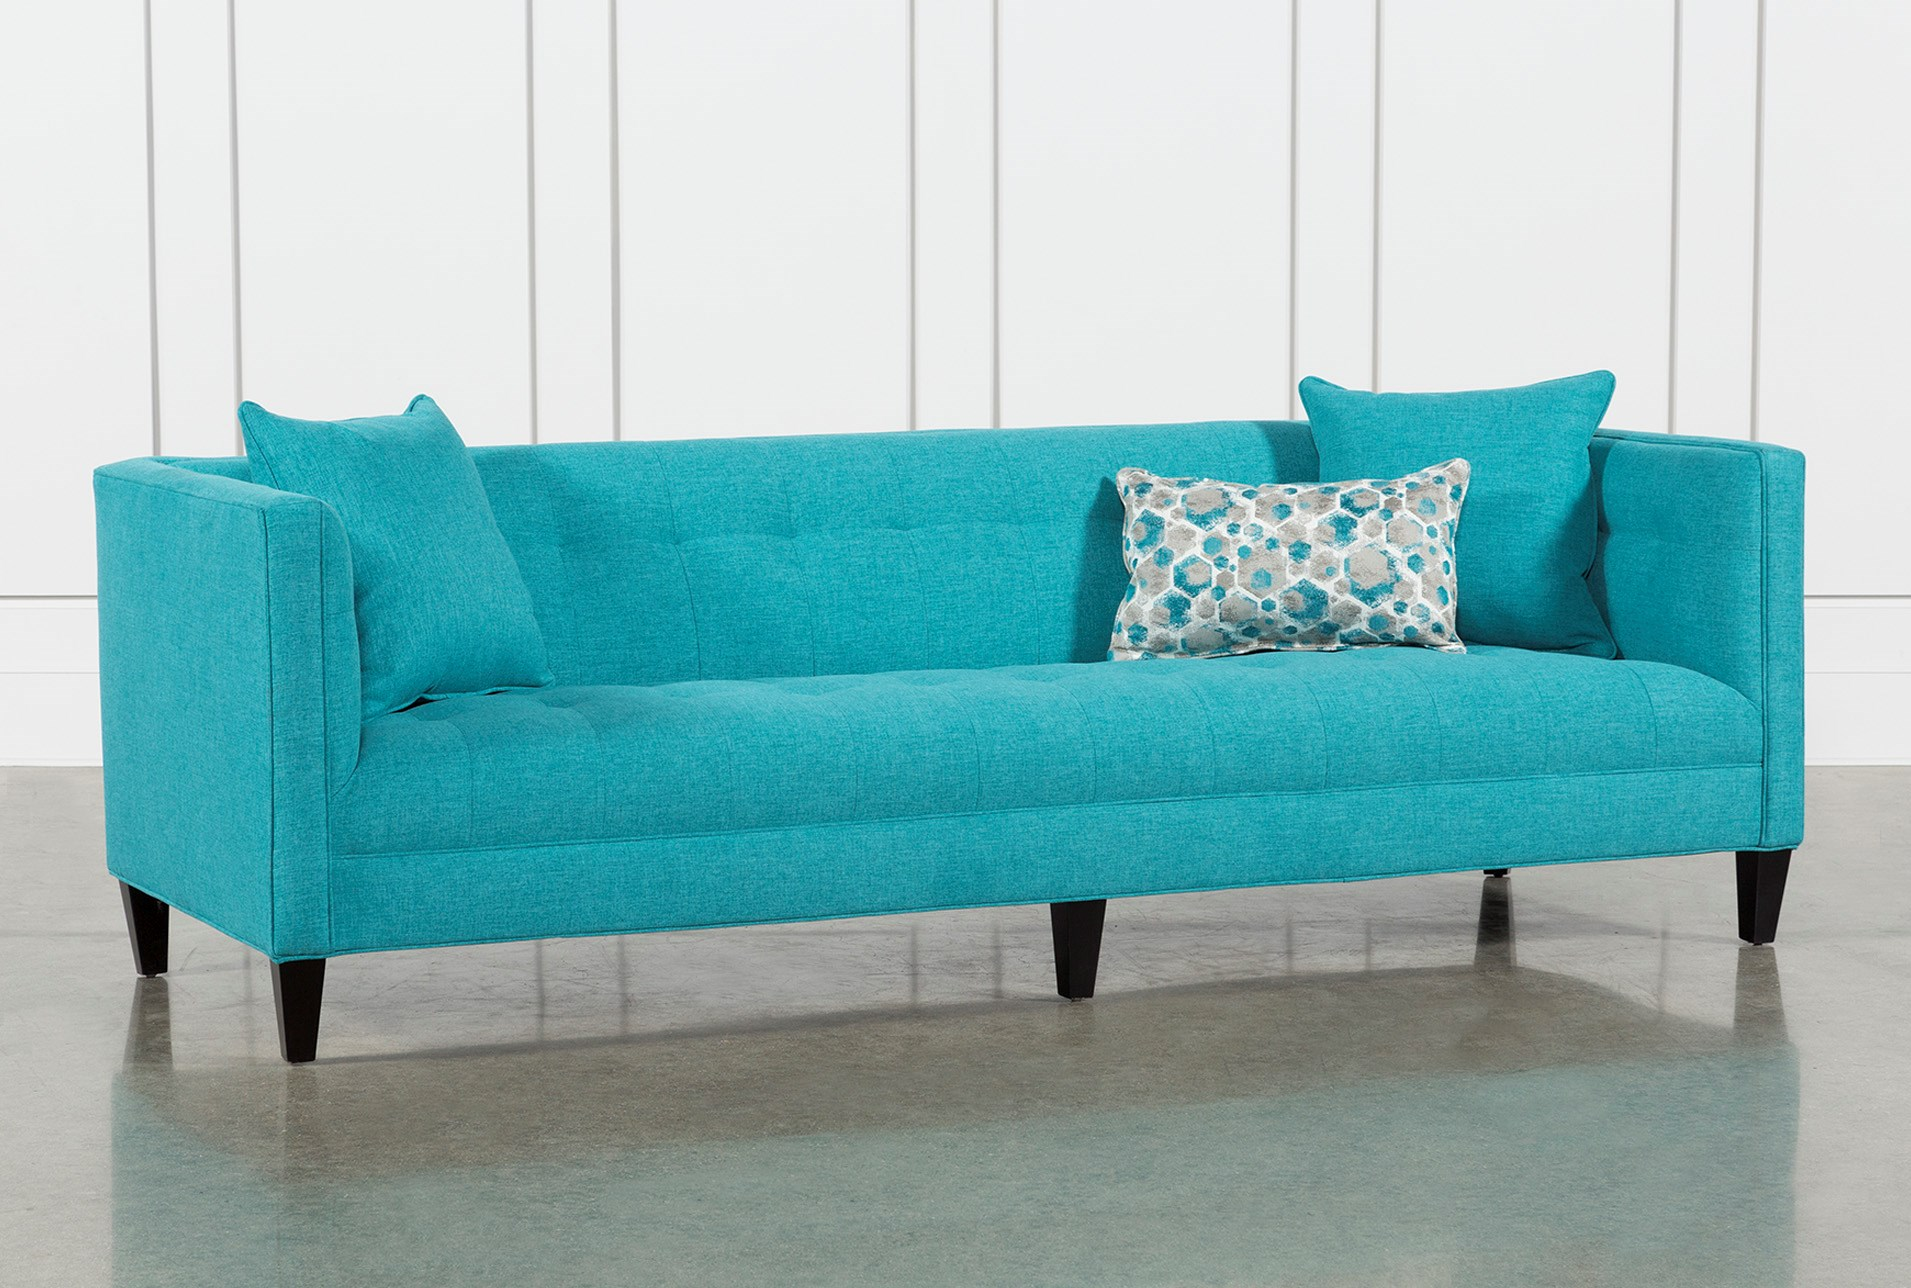 Teal Sofa Bed Can T Wait To Order Our New Sofas Love Them